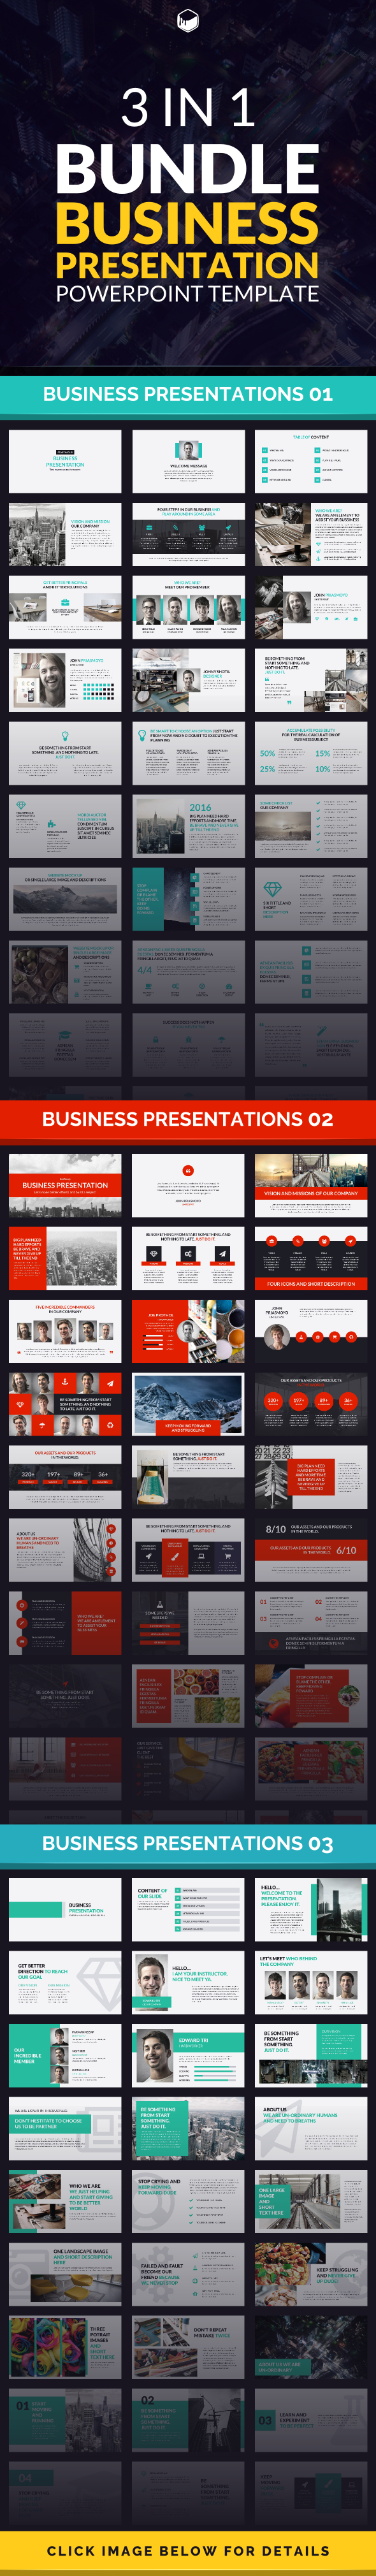 Business Presentation Bundle - Business PowerPoint Templates